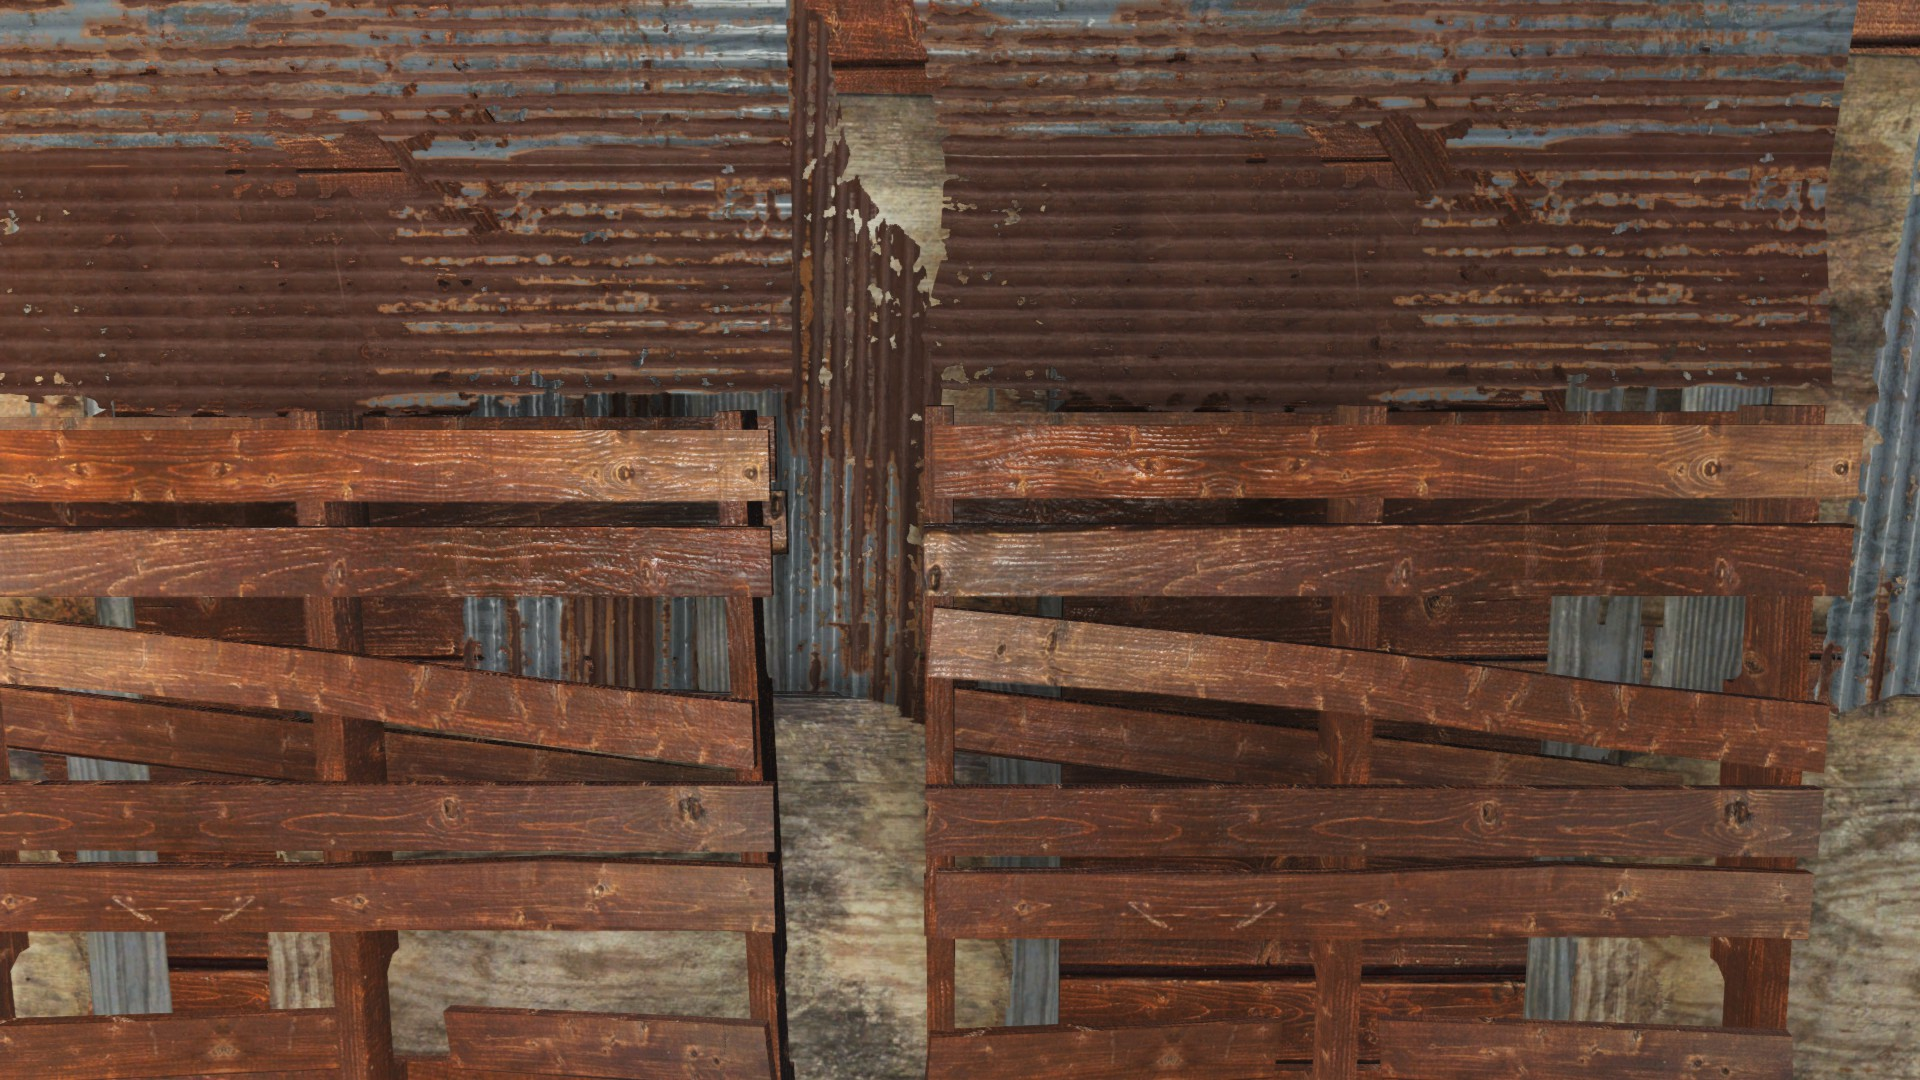 Remember That Fence You Wanted Encompassing Sanctuary Or The Red Rocket All Those Holes Between Pieces After Finished